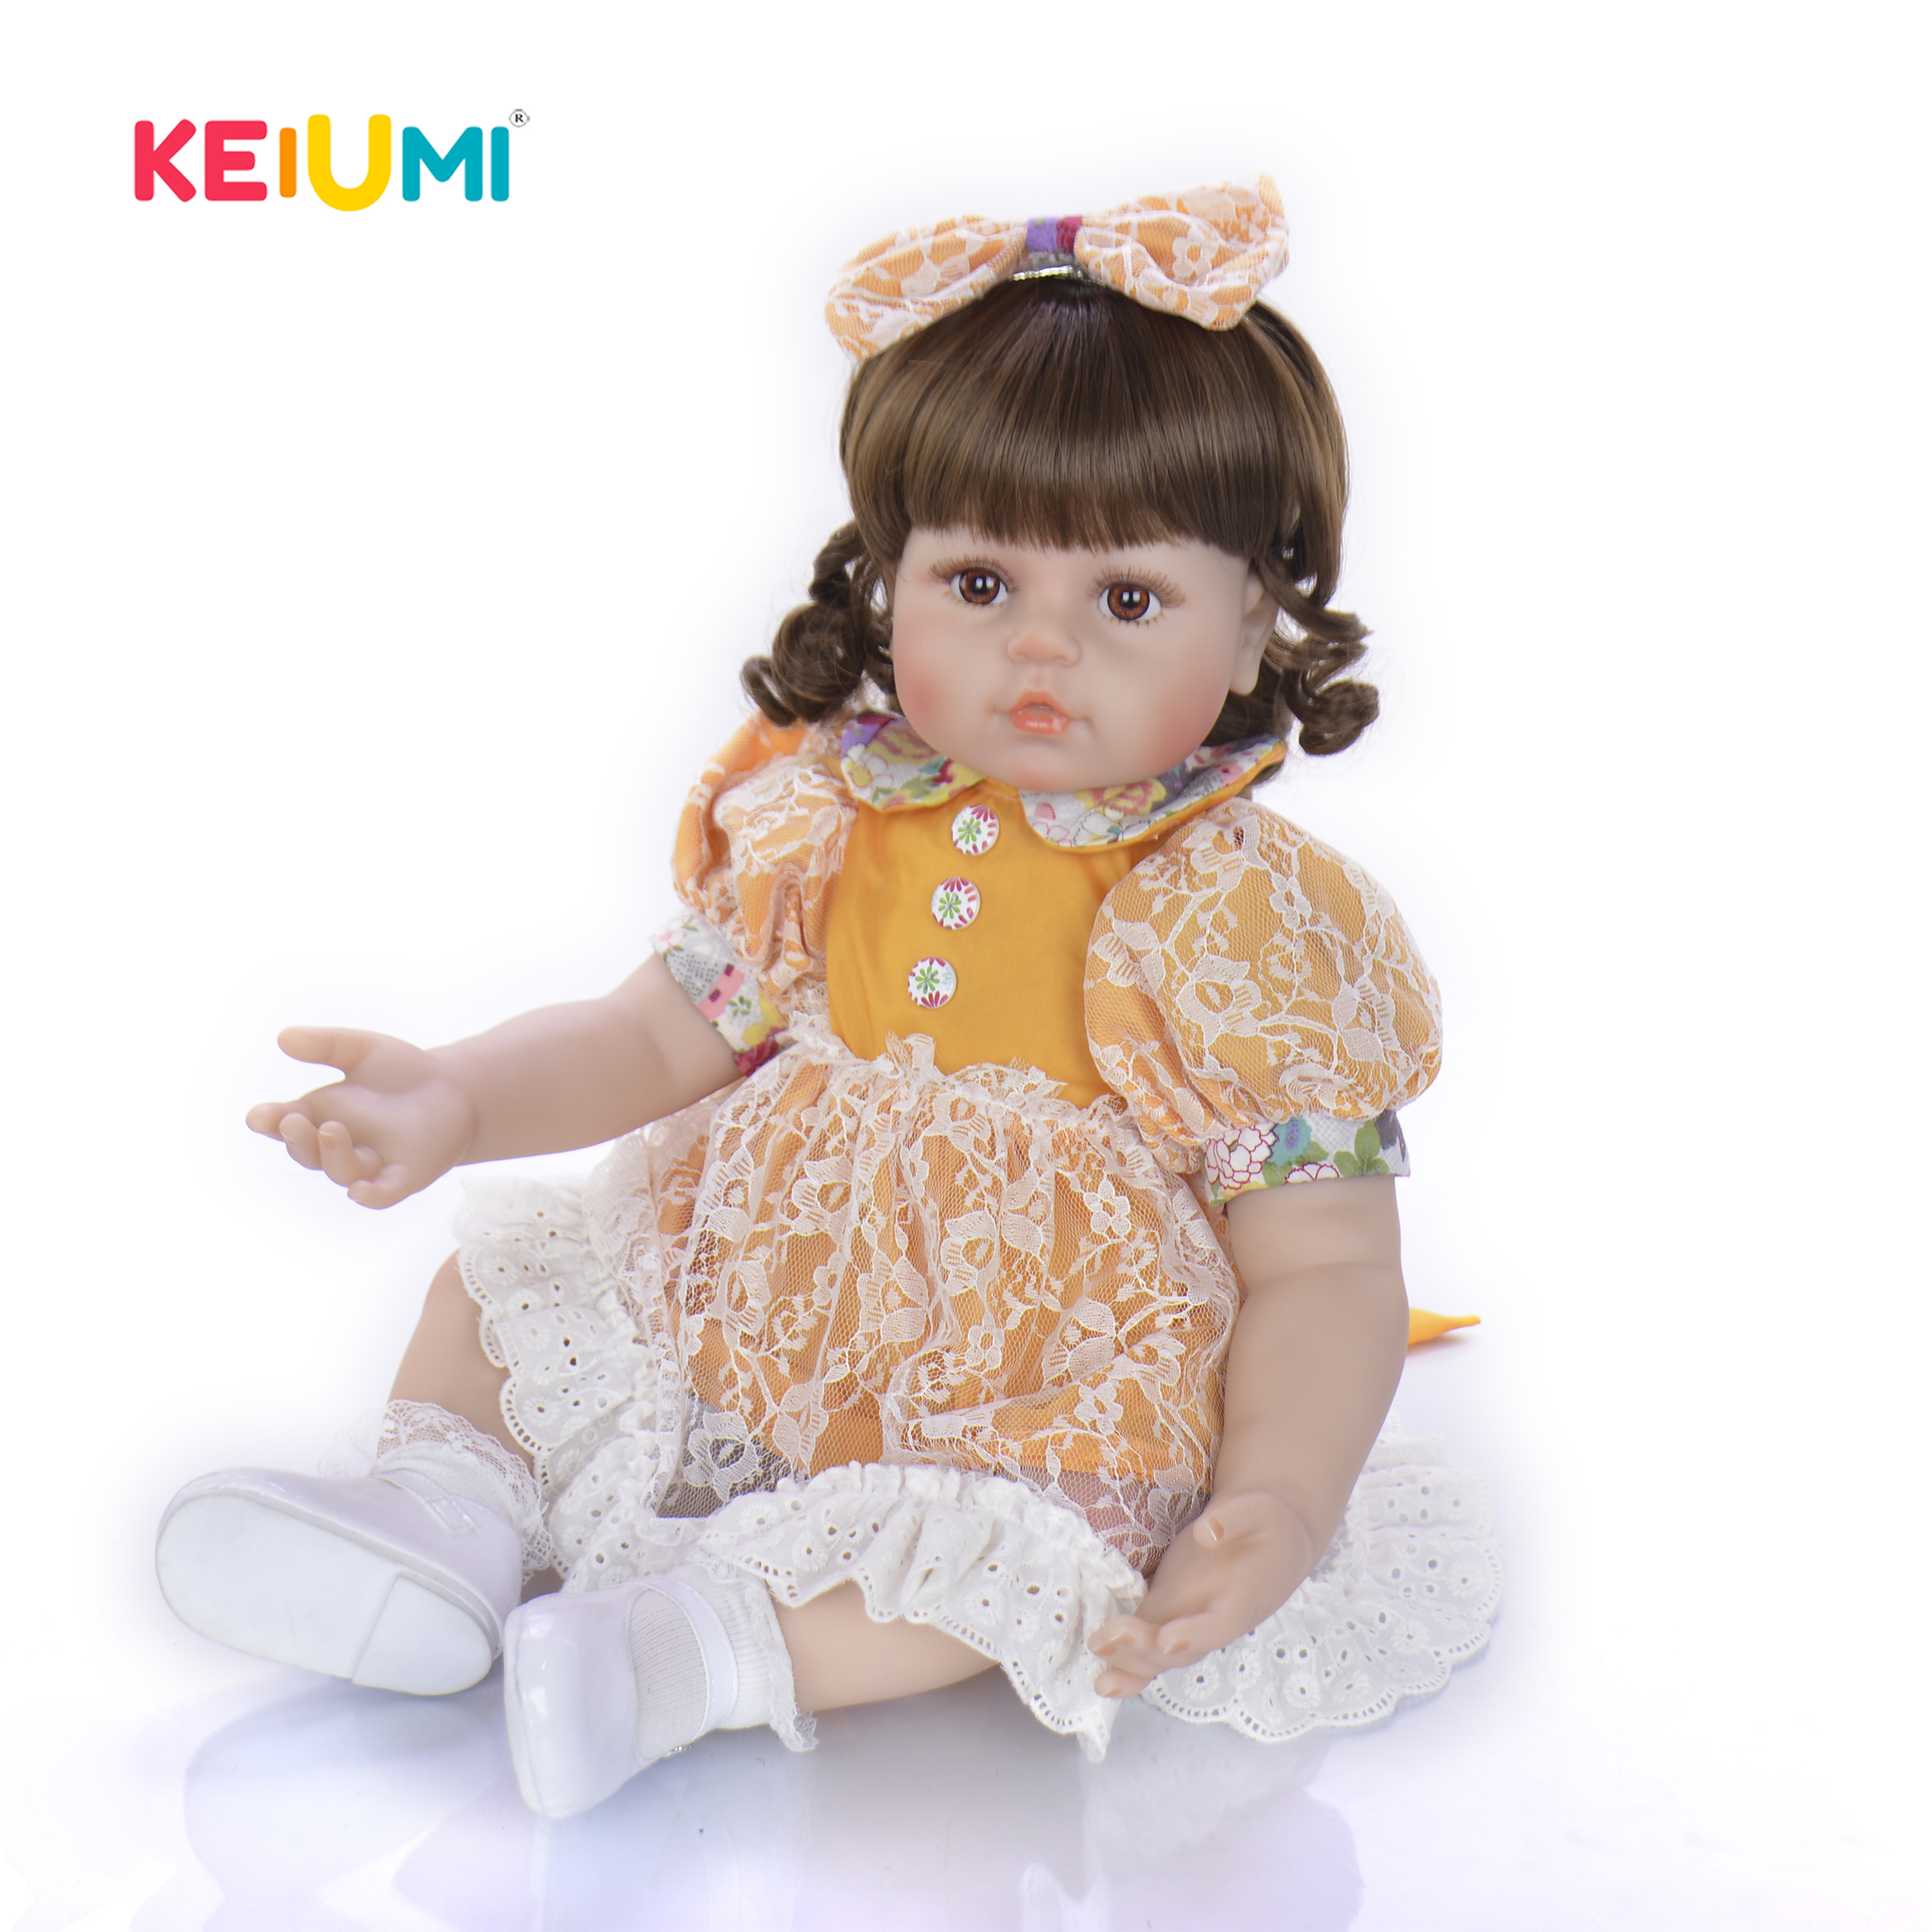 KEIUMI 2019 Lovely 24 Inch New Style Reborn Baby Girl Doll With Soft Silicone Vinyl Baby Cute Toy Doll For Childrens Day GiftsKEIUMI 2019 Lovely 24 Inch New Style Reborn Baby Girl Doll With Soft Silicone Vinyl Baby Cute Toy Doll For Childrens Day Gifts